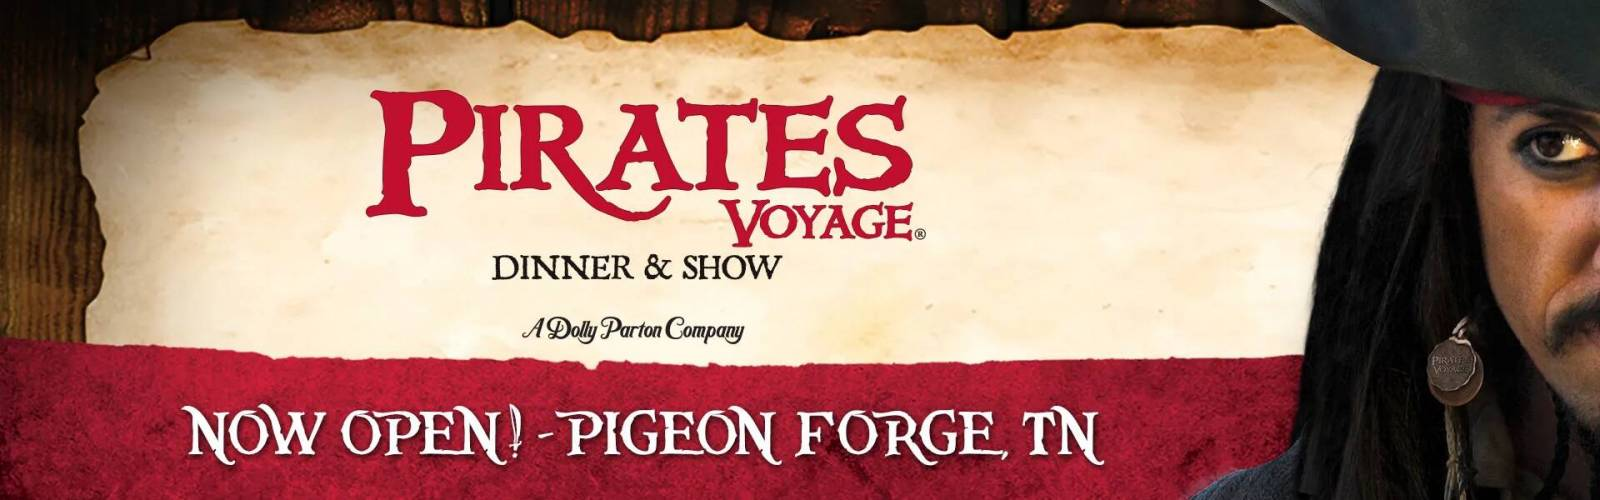 Pirates Voyage Dinner & Show